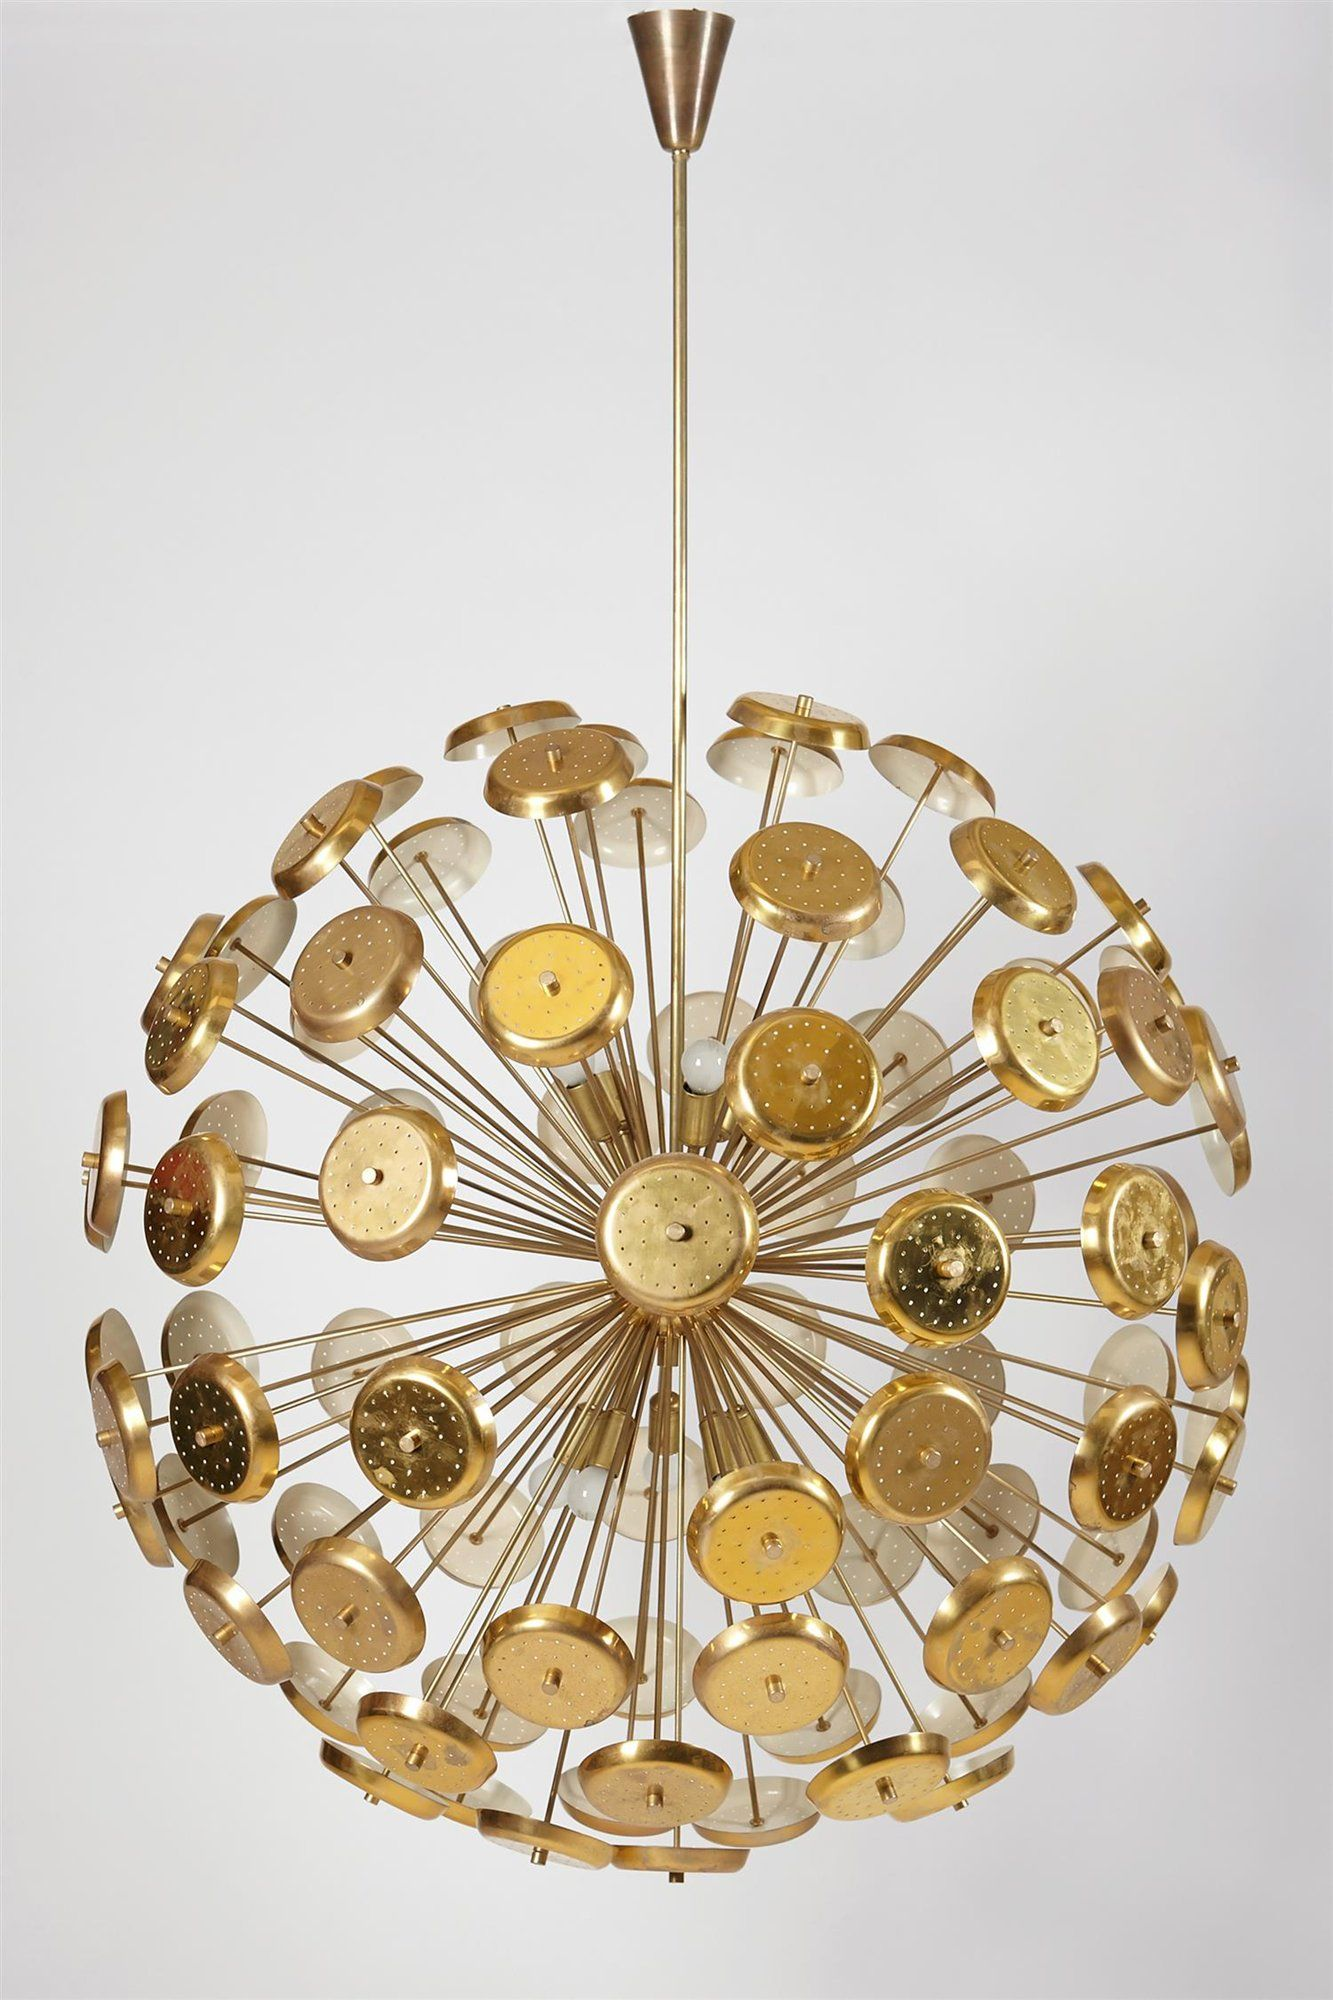 Anonymous; Lacquered and Polished Brass Ceiling Light, 1950s.